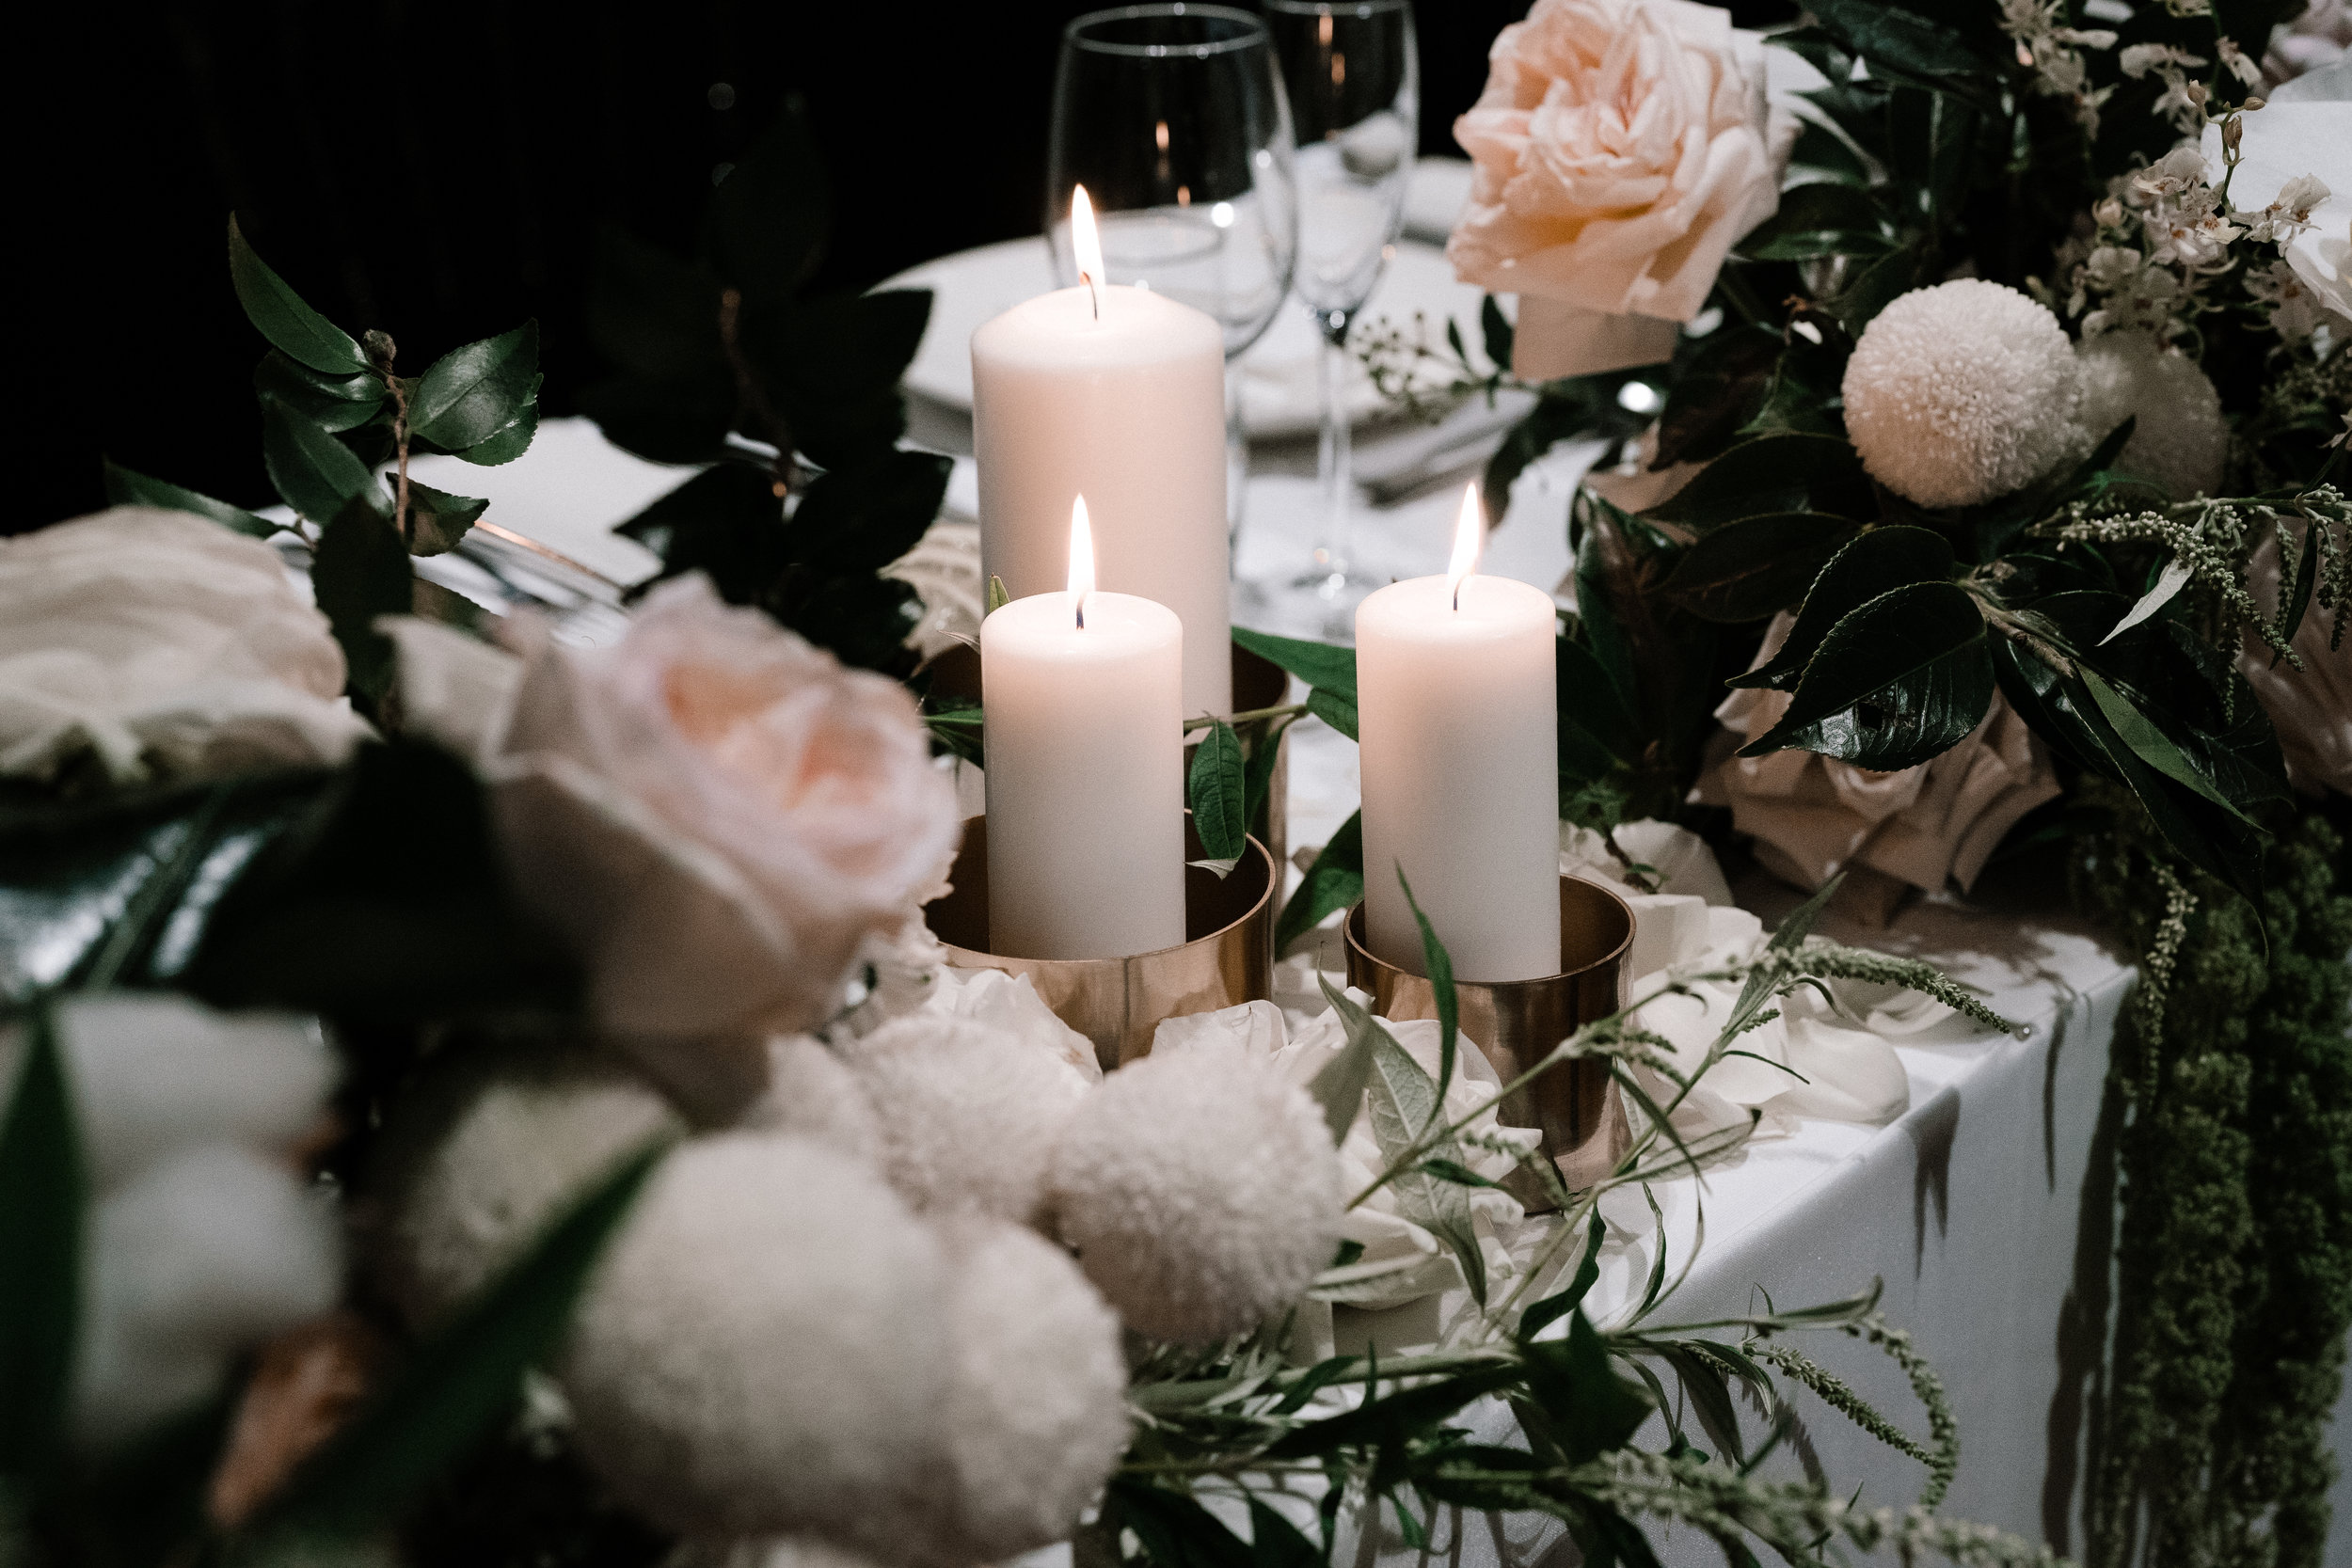 pillar candle hire package x 15 pieces in gold cylinder vases *as pictured or square glass vases. choice of black or white pillar candles - $440.00